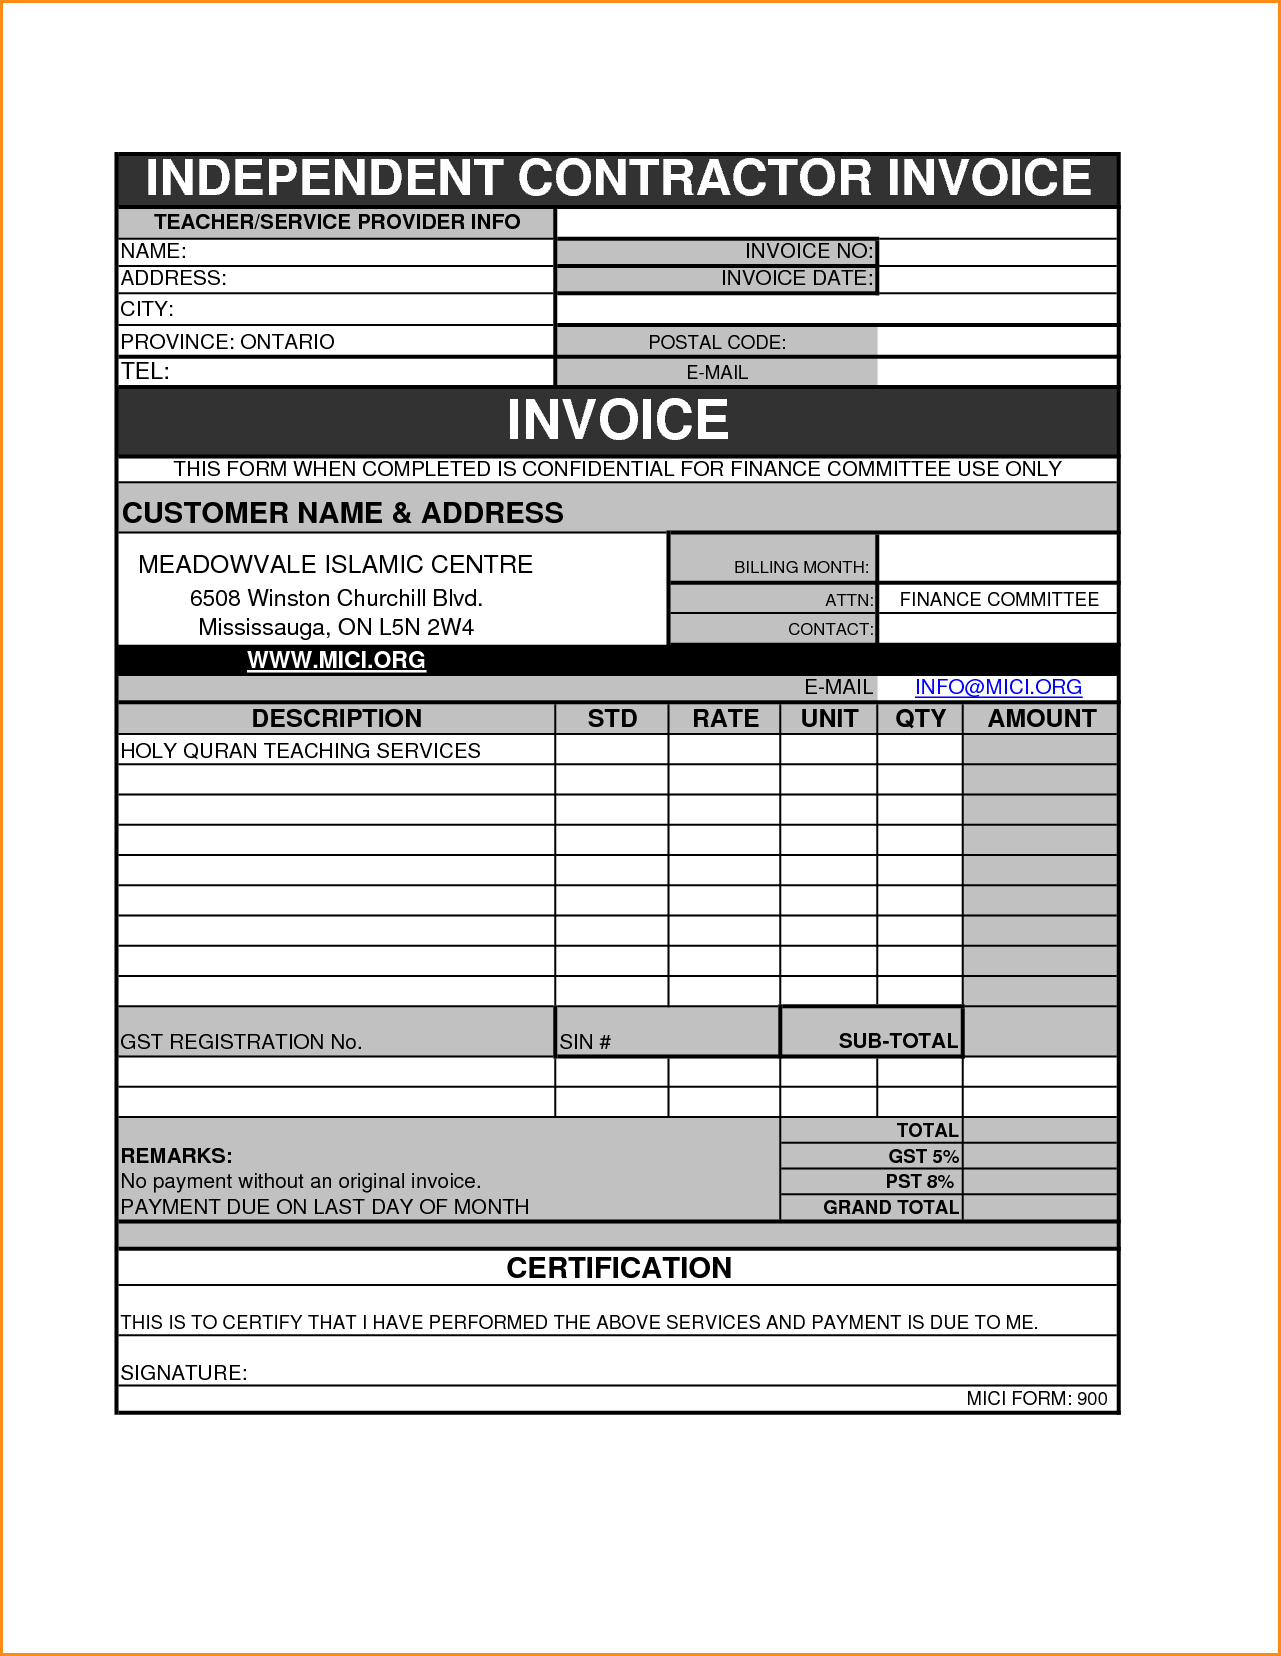 Invoice Template for Contractor and 11 Independent Contractor Invoice Template Invoice Template